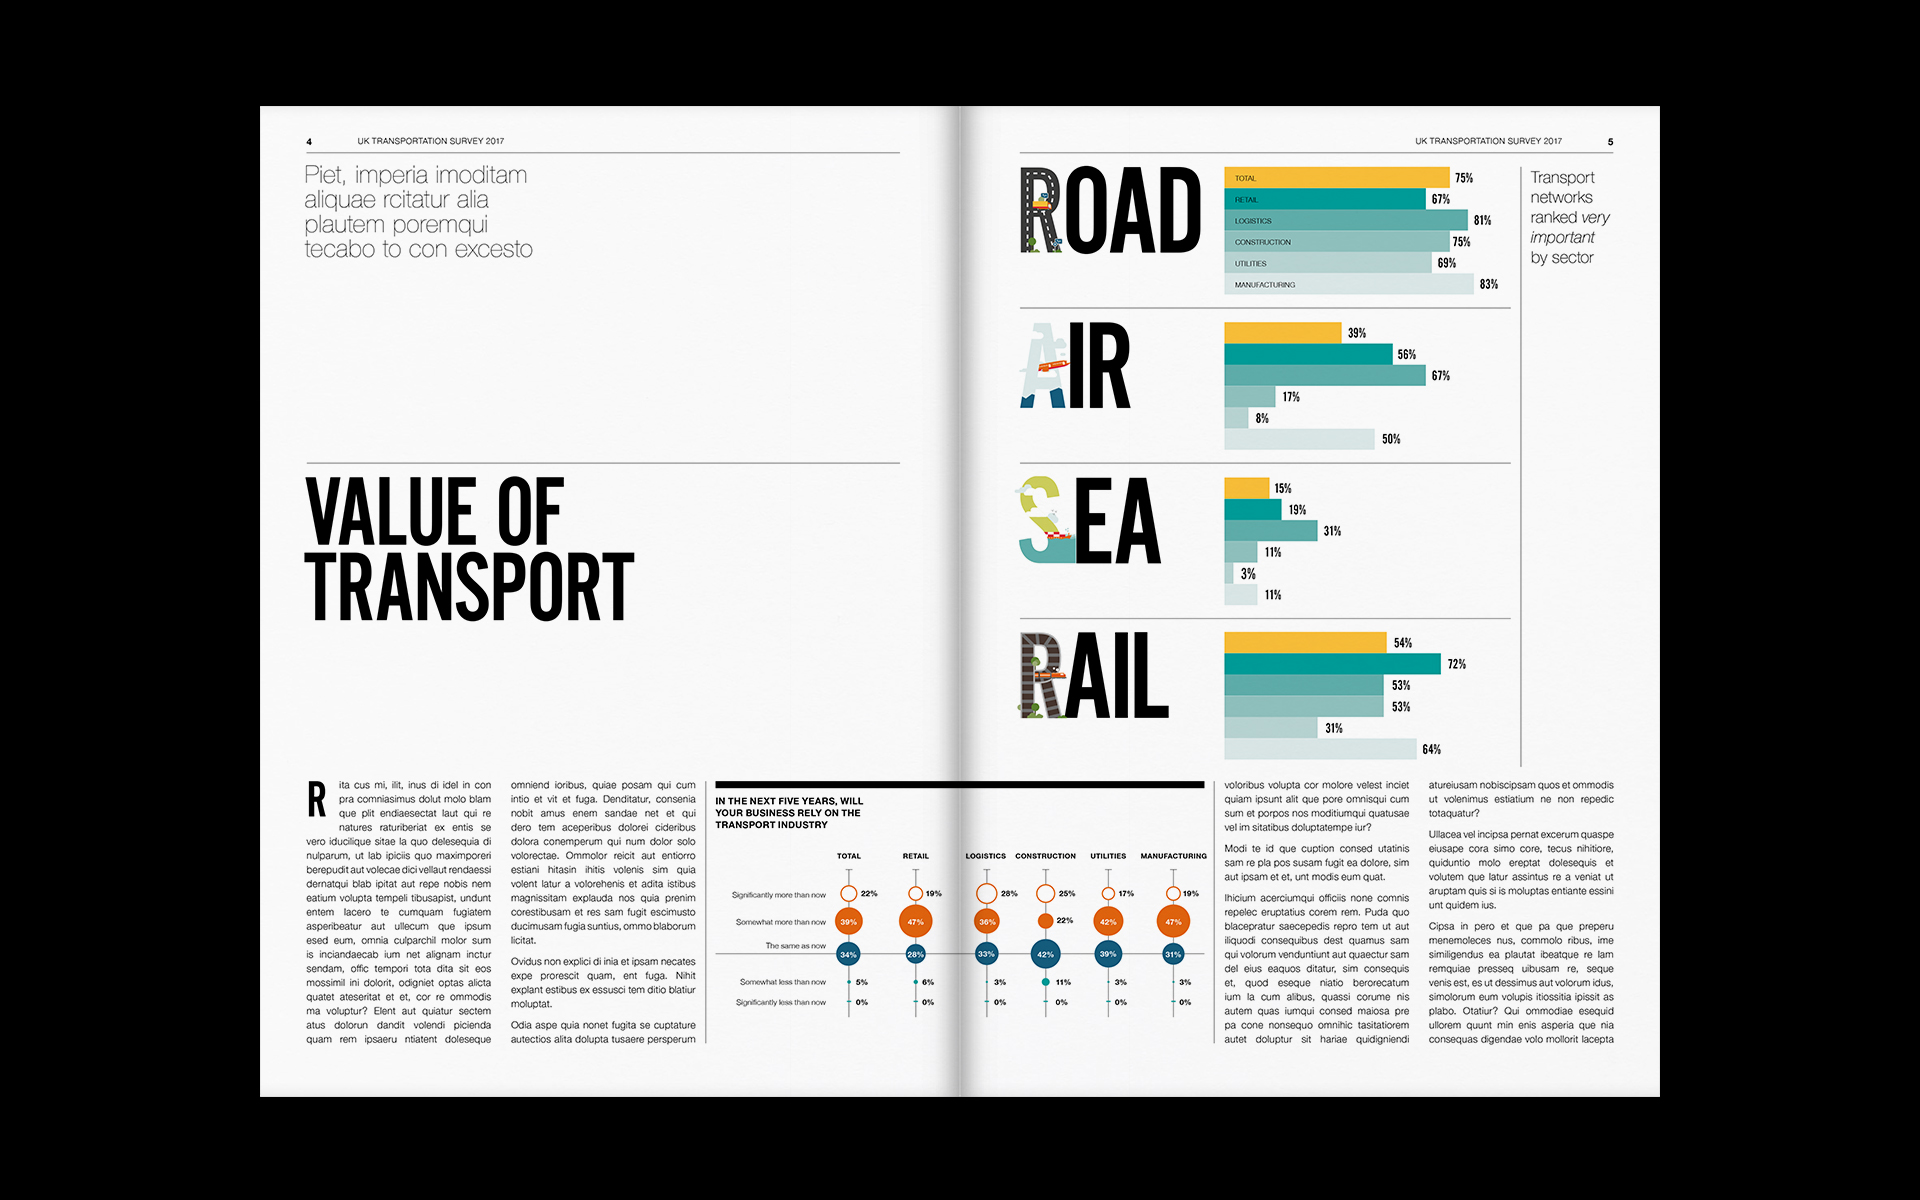 Transport_02Spread-02